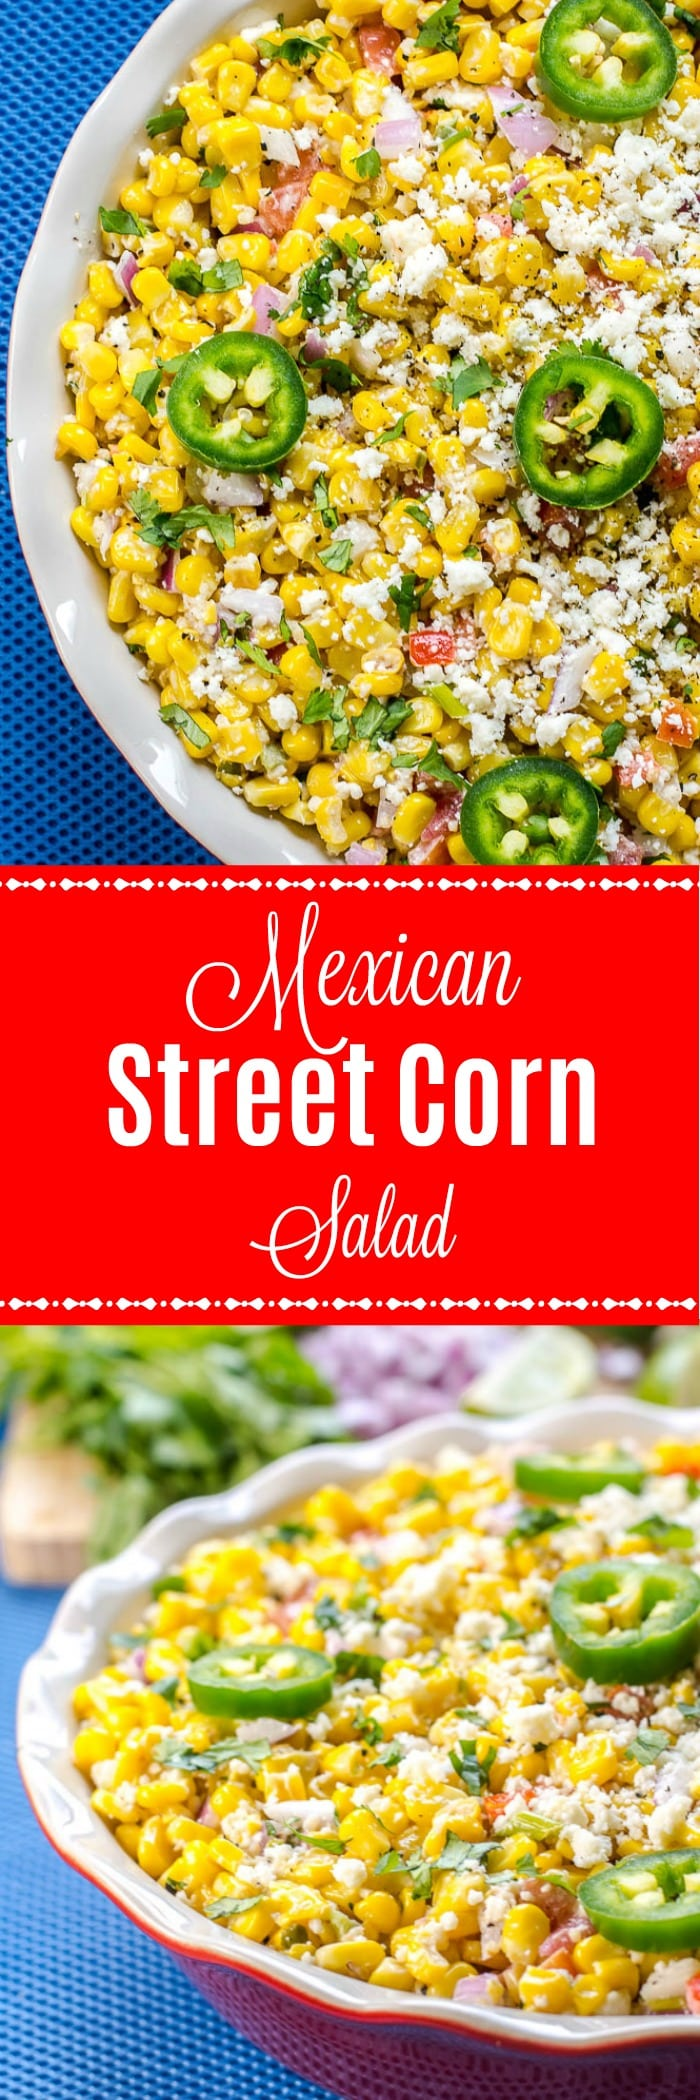 Mexican Street Corn Salad Recipe is deconstructed Elote or Mexican Street Corn, a popular Mexican street food, served in a bowl, instead of as corn on the cob, and covered with a fantastic chili lime cream sauce and cotija cheese.  #CincoDeMayo #MexicanStreetCorn #SummerSalad #MexicanStreetCornSalad